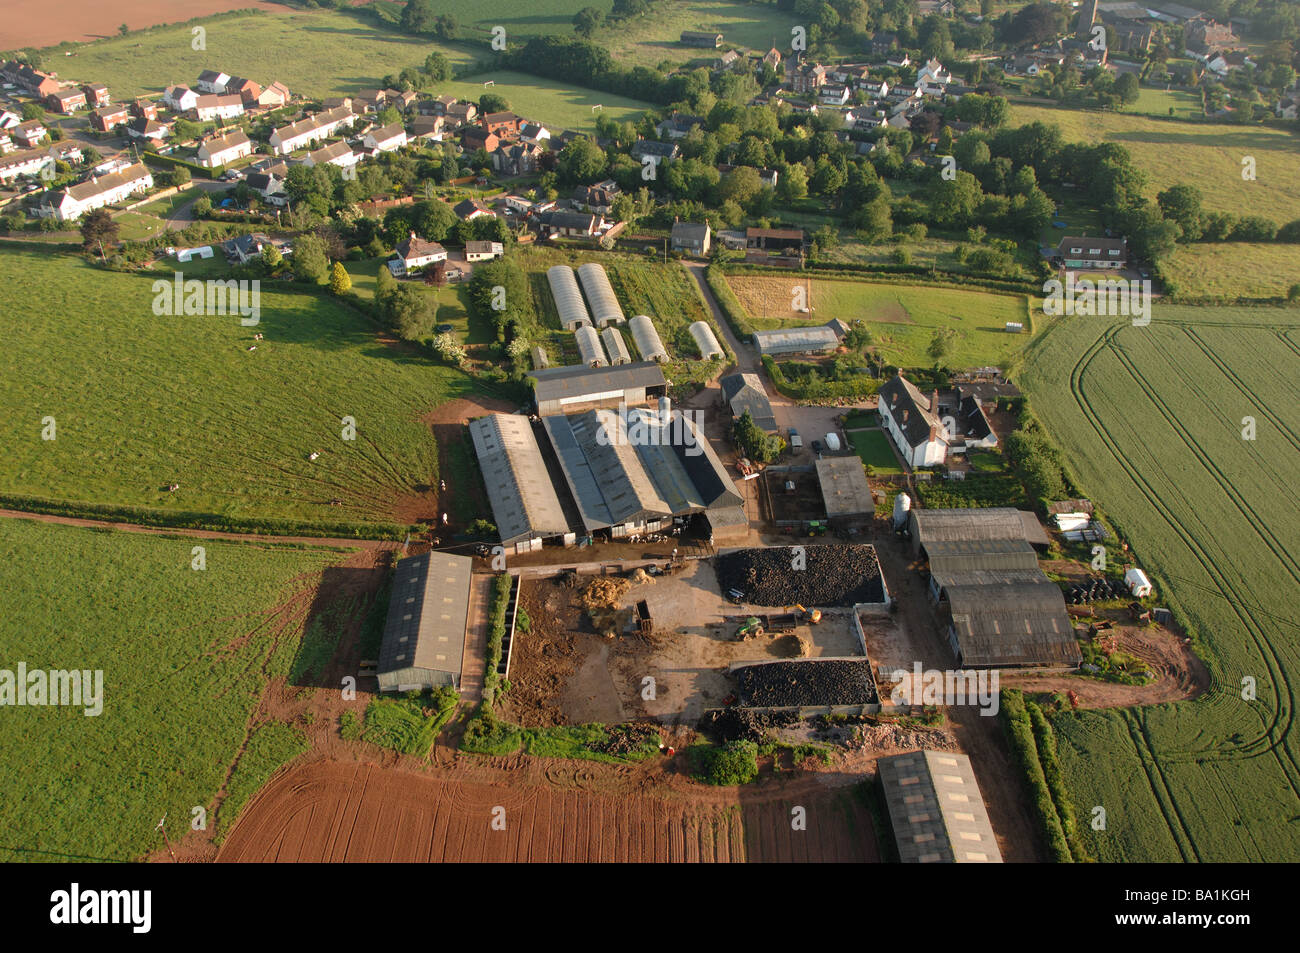 View from the air of large lowland farm probably dairy near Halberton Village in Mid Devon - Stock Image